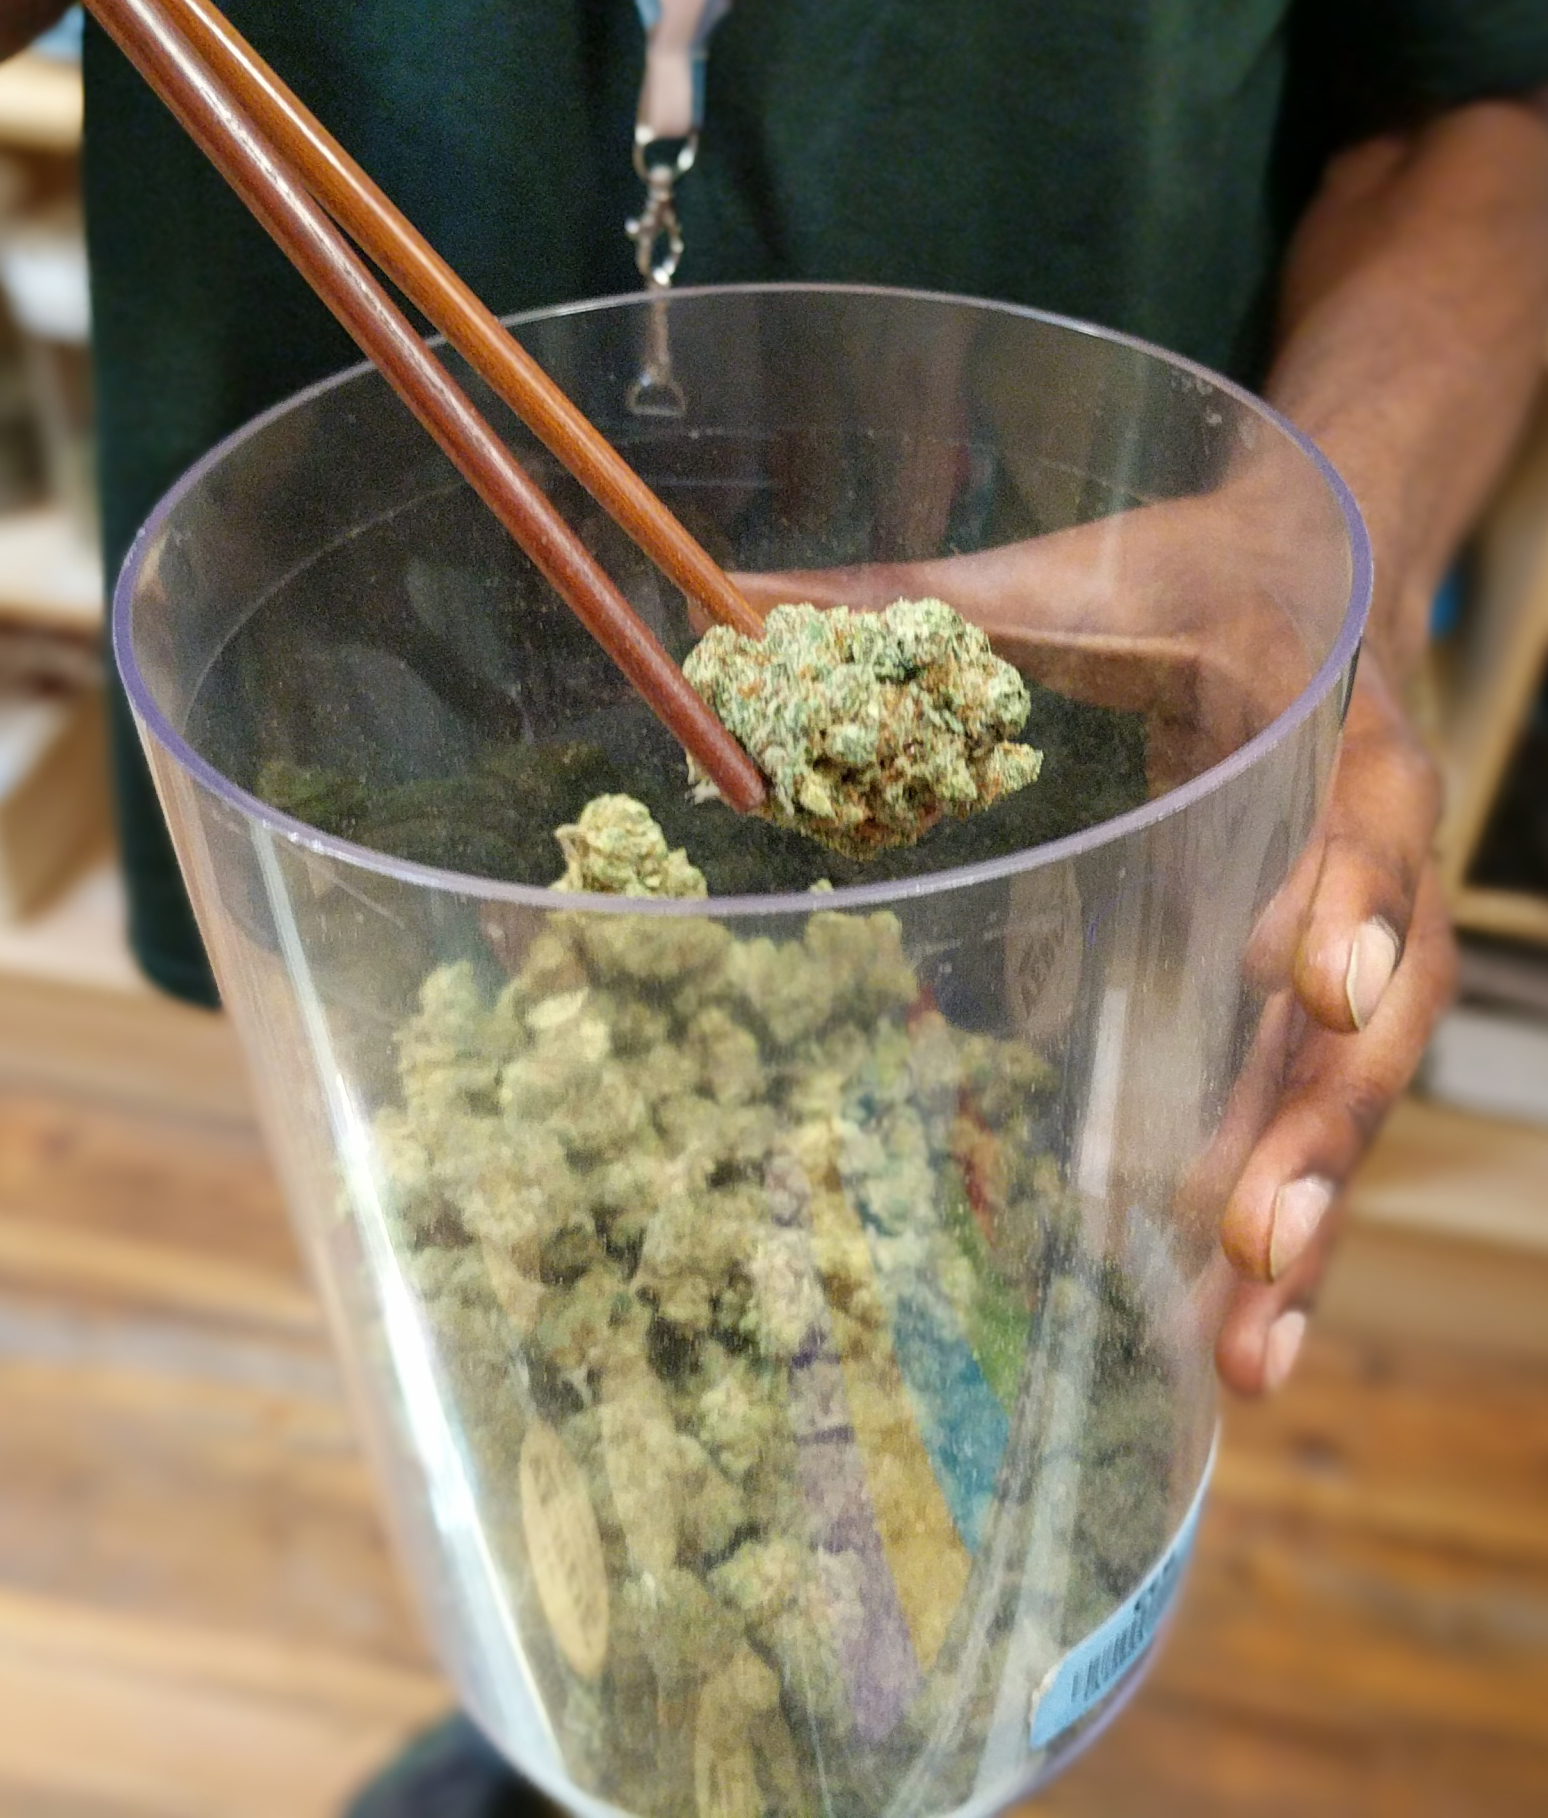 Budtender showing product in a cannabis dispensary